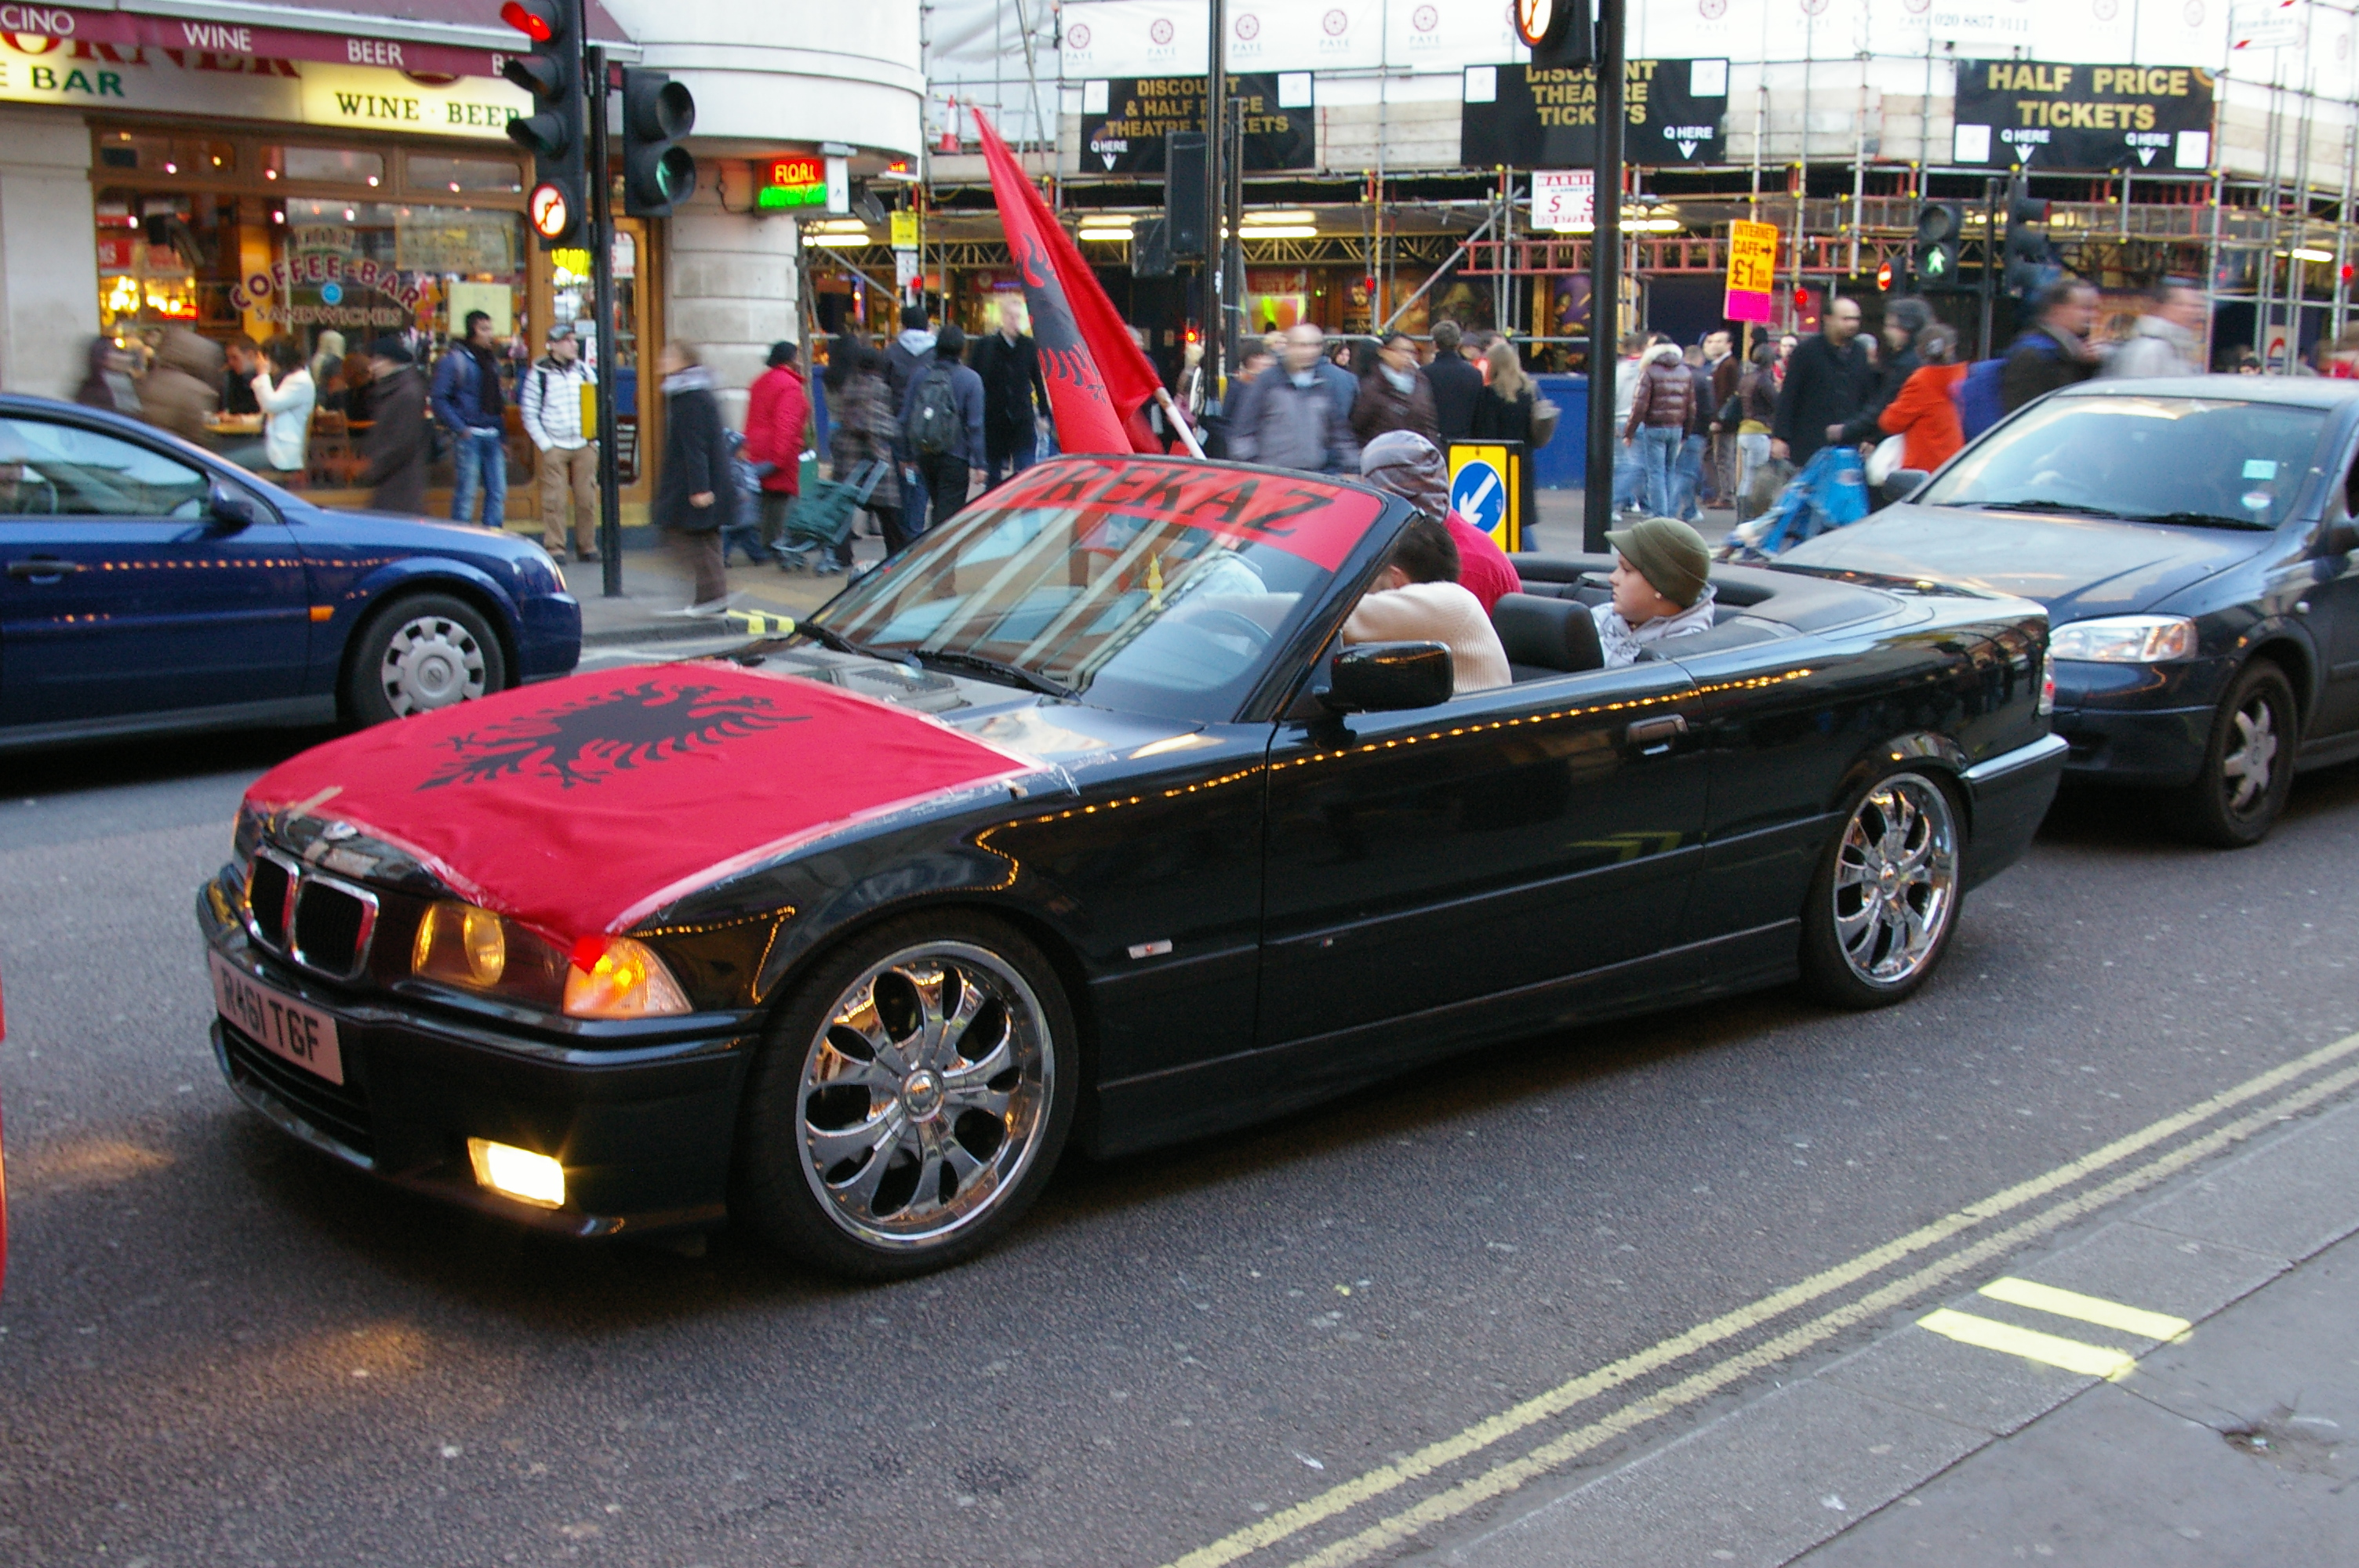 BMW 320i Convertible | Flickr - Photo Sharing!